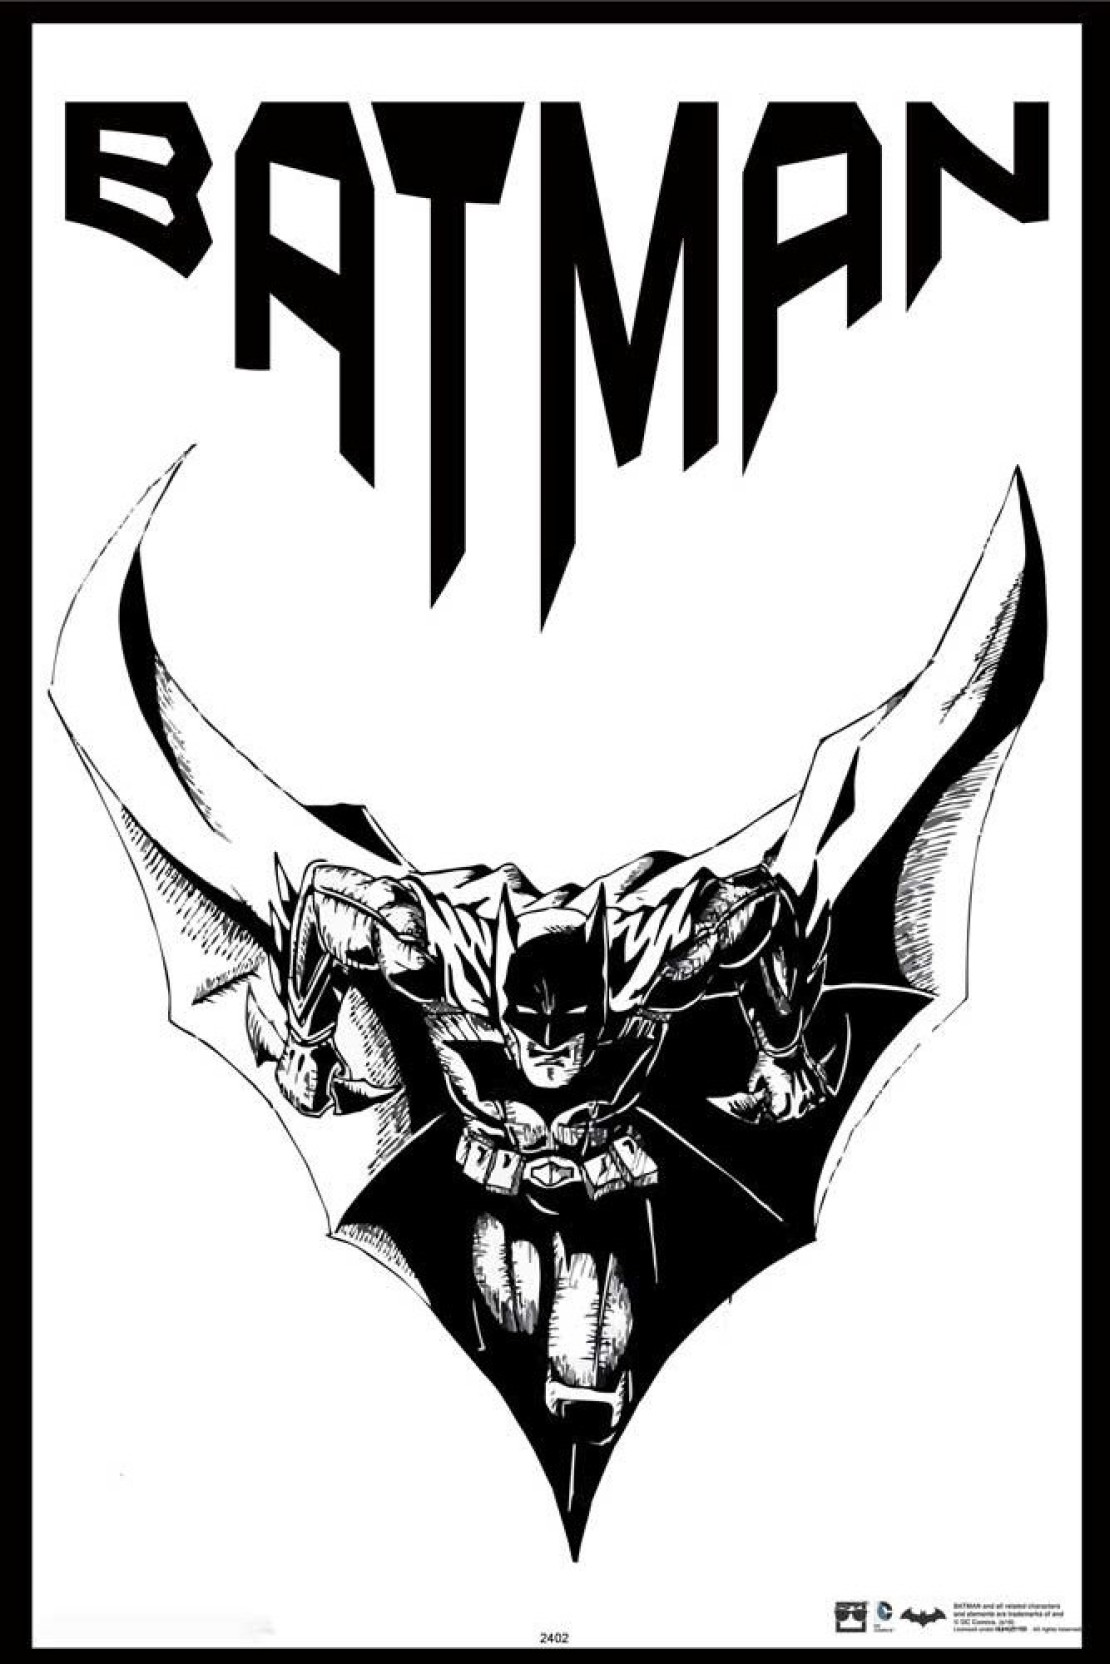 Hungover batman official artwork special paper poster 12x18 inches paper print 18 inch x 12 inch